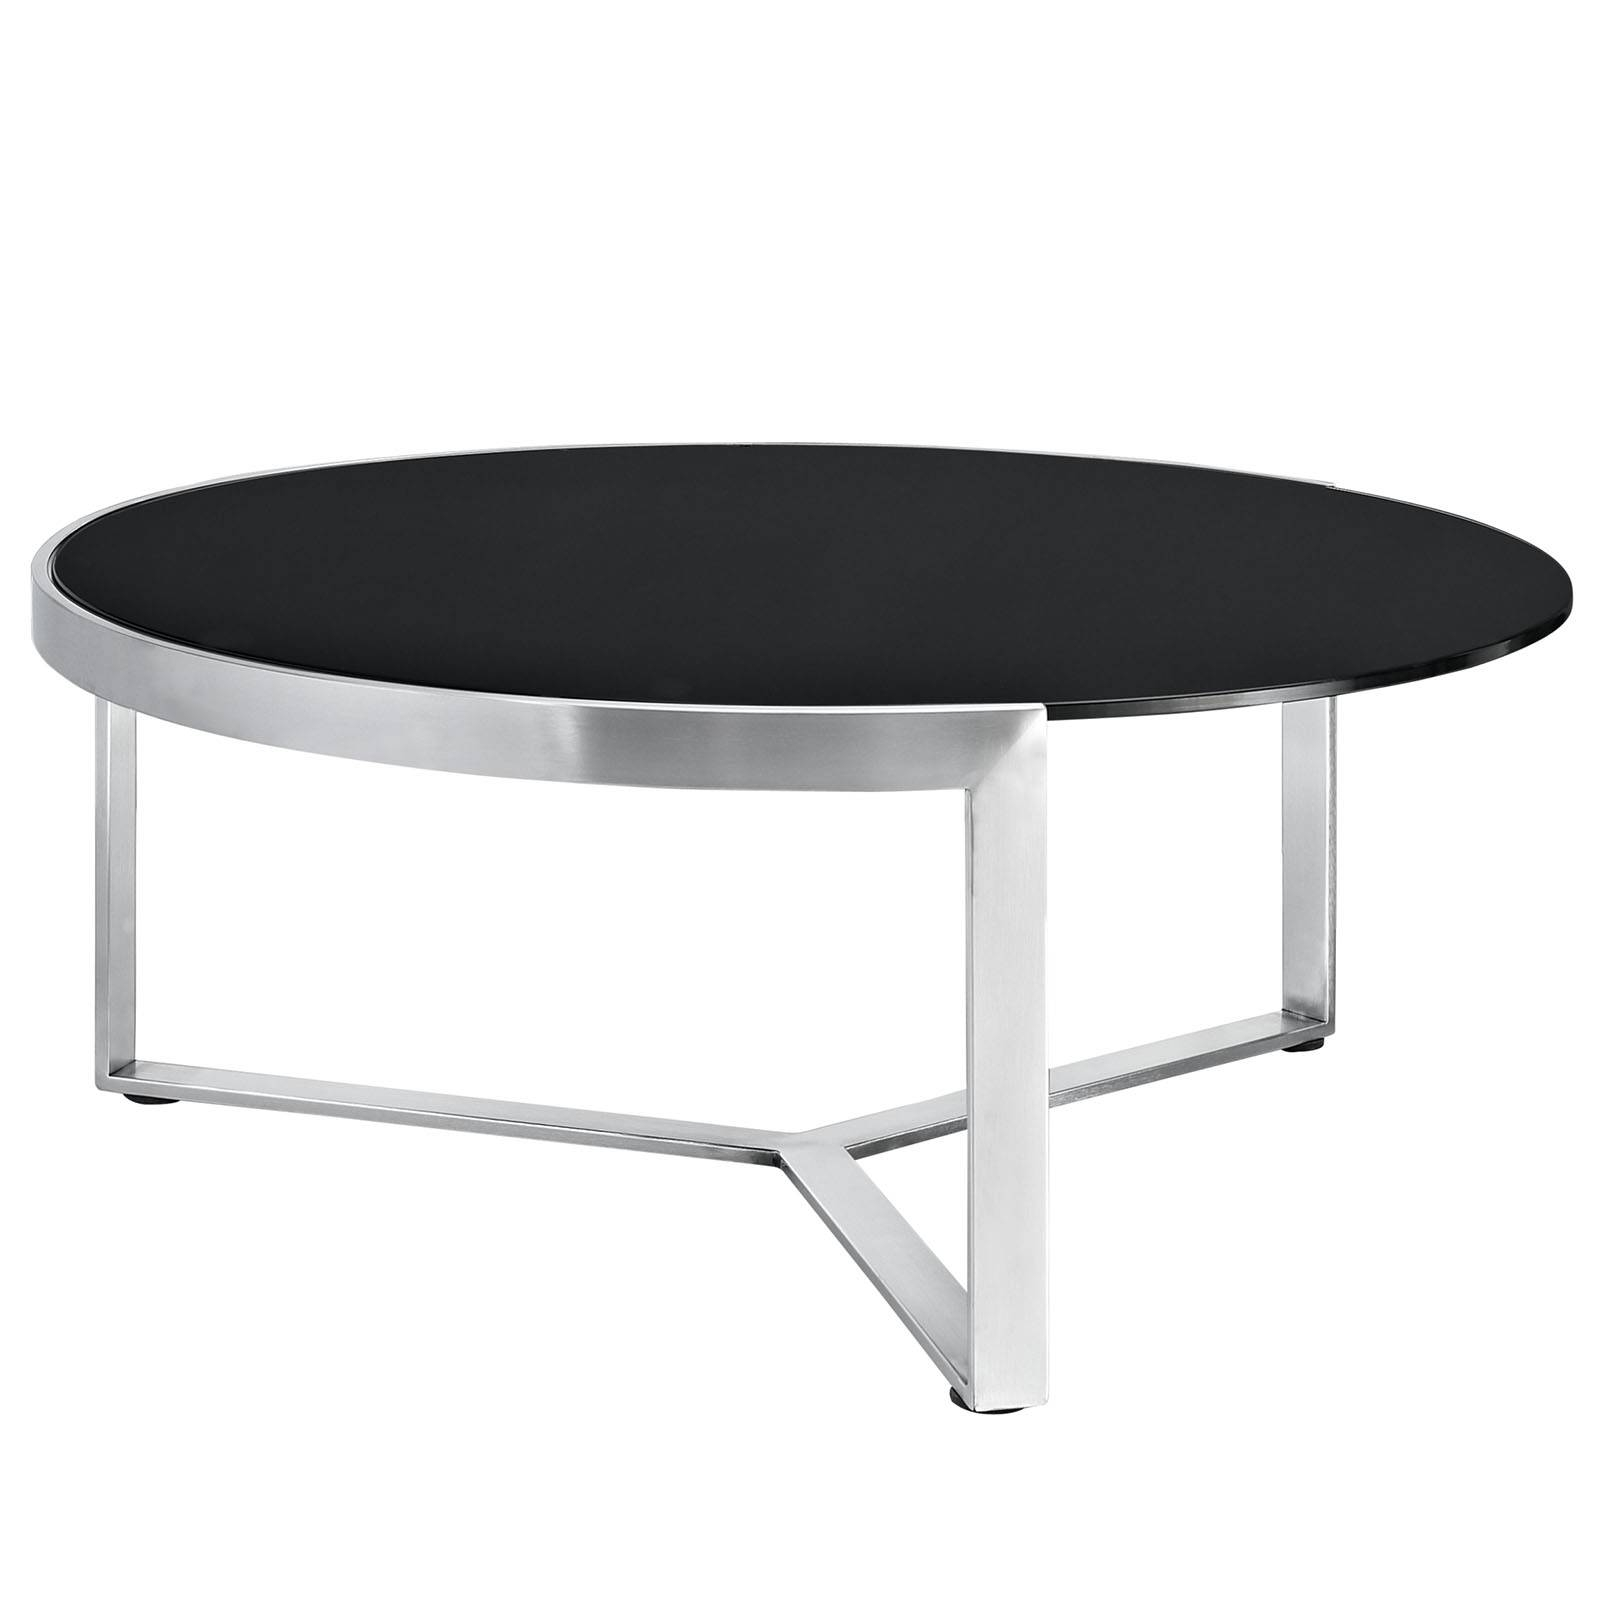 30 best ideas of chrome leg coffee tables black glass coffee table with black legs coffee tables decoration within chrome leg coffee tables geotapseo Image collections